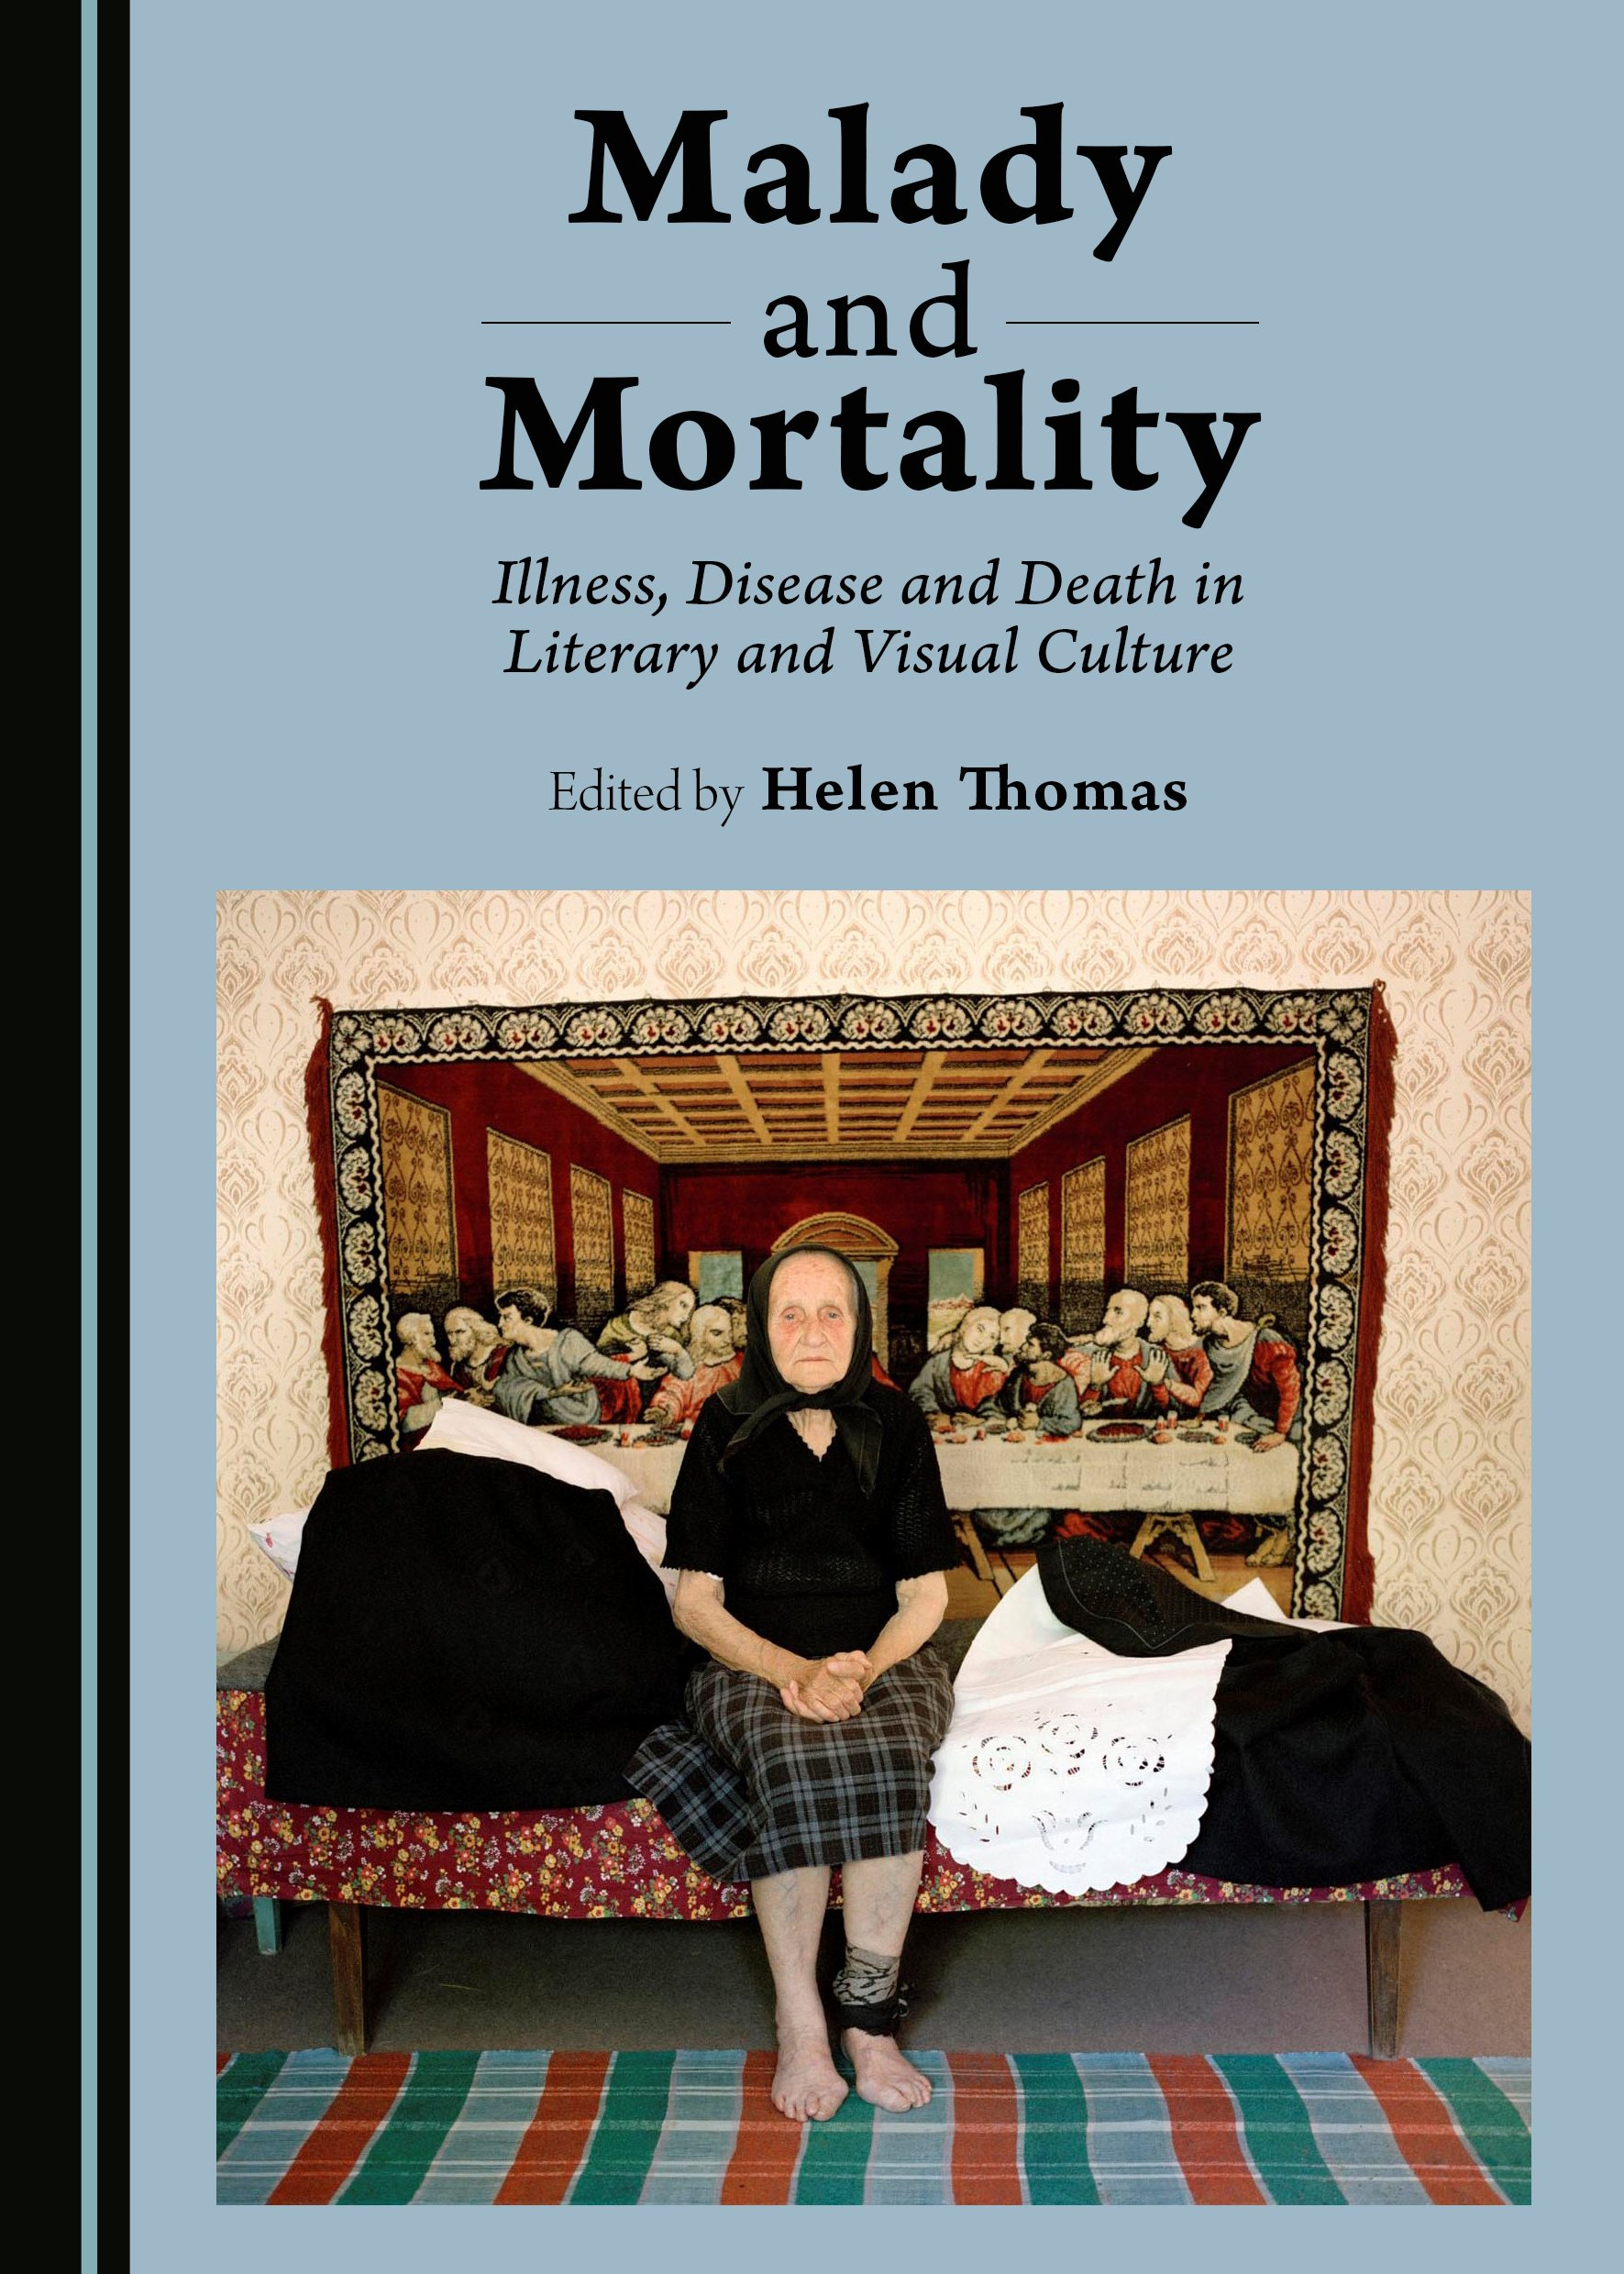 Malady and Mortality: Illness, Disease and Death in Literary and Visual Culture